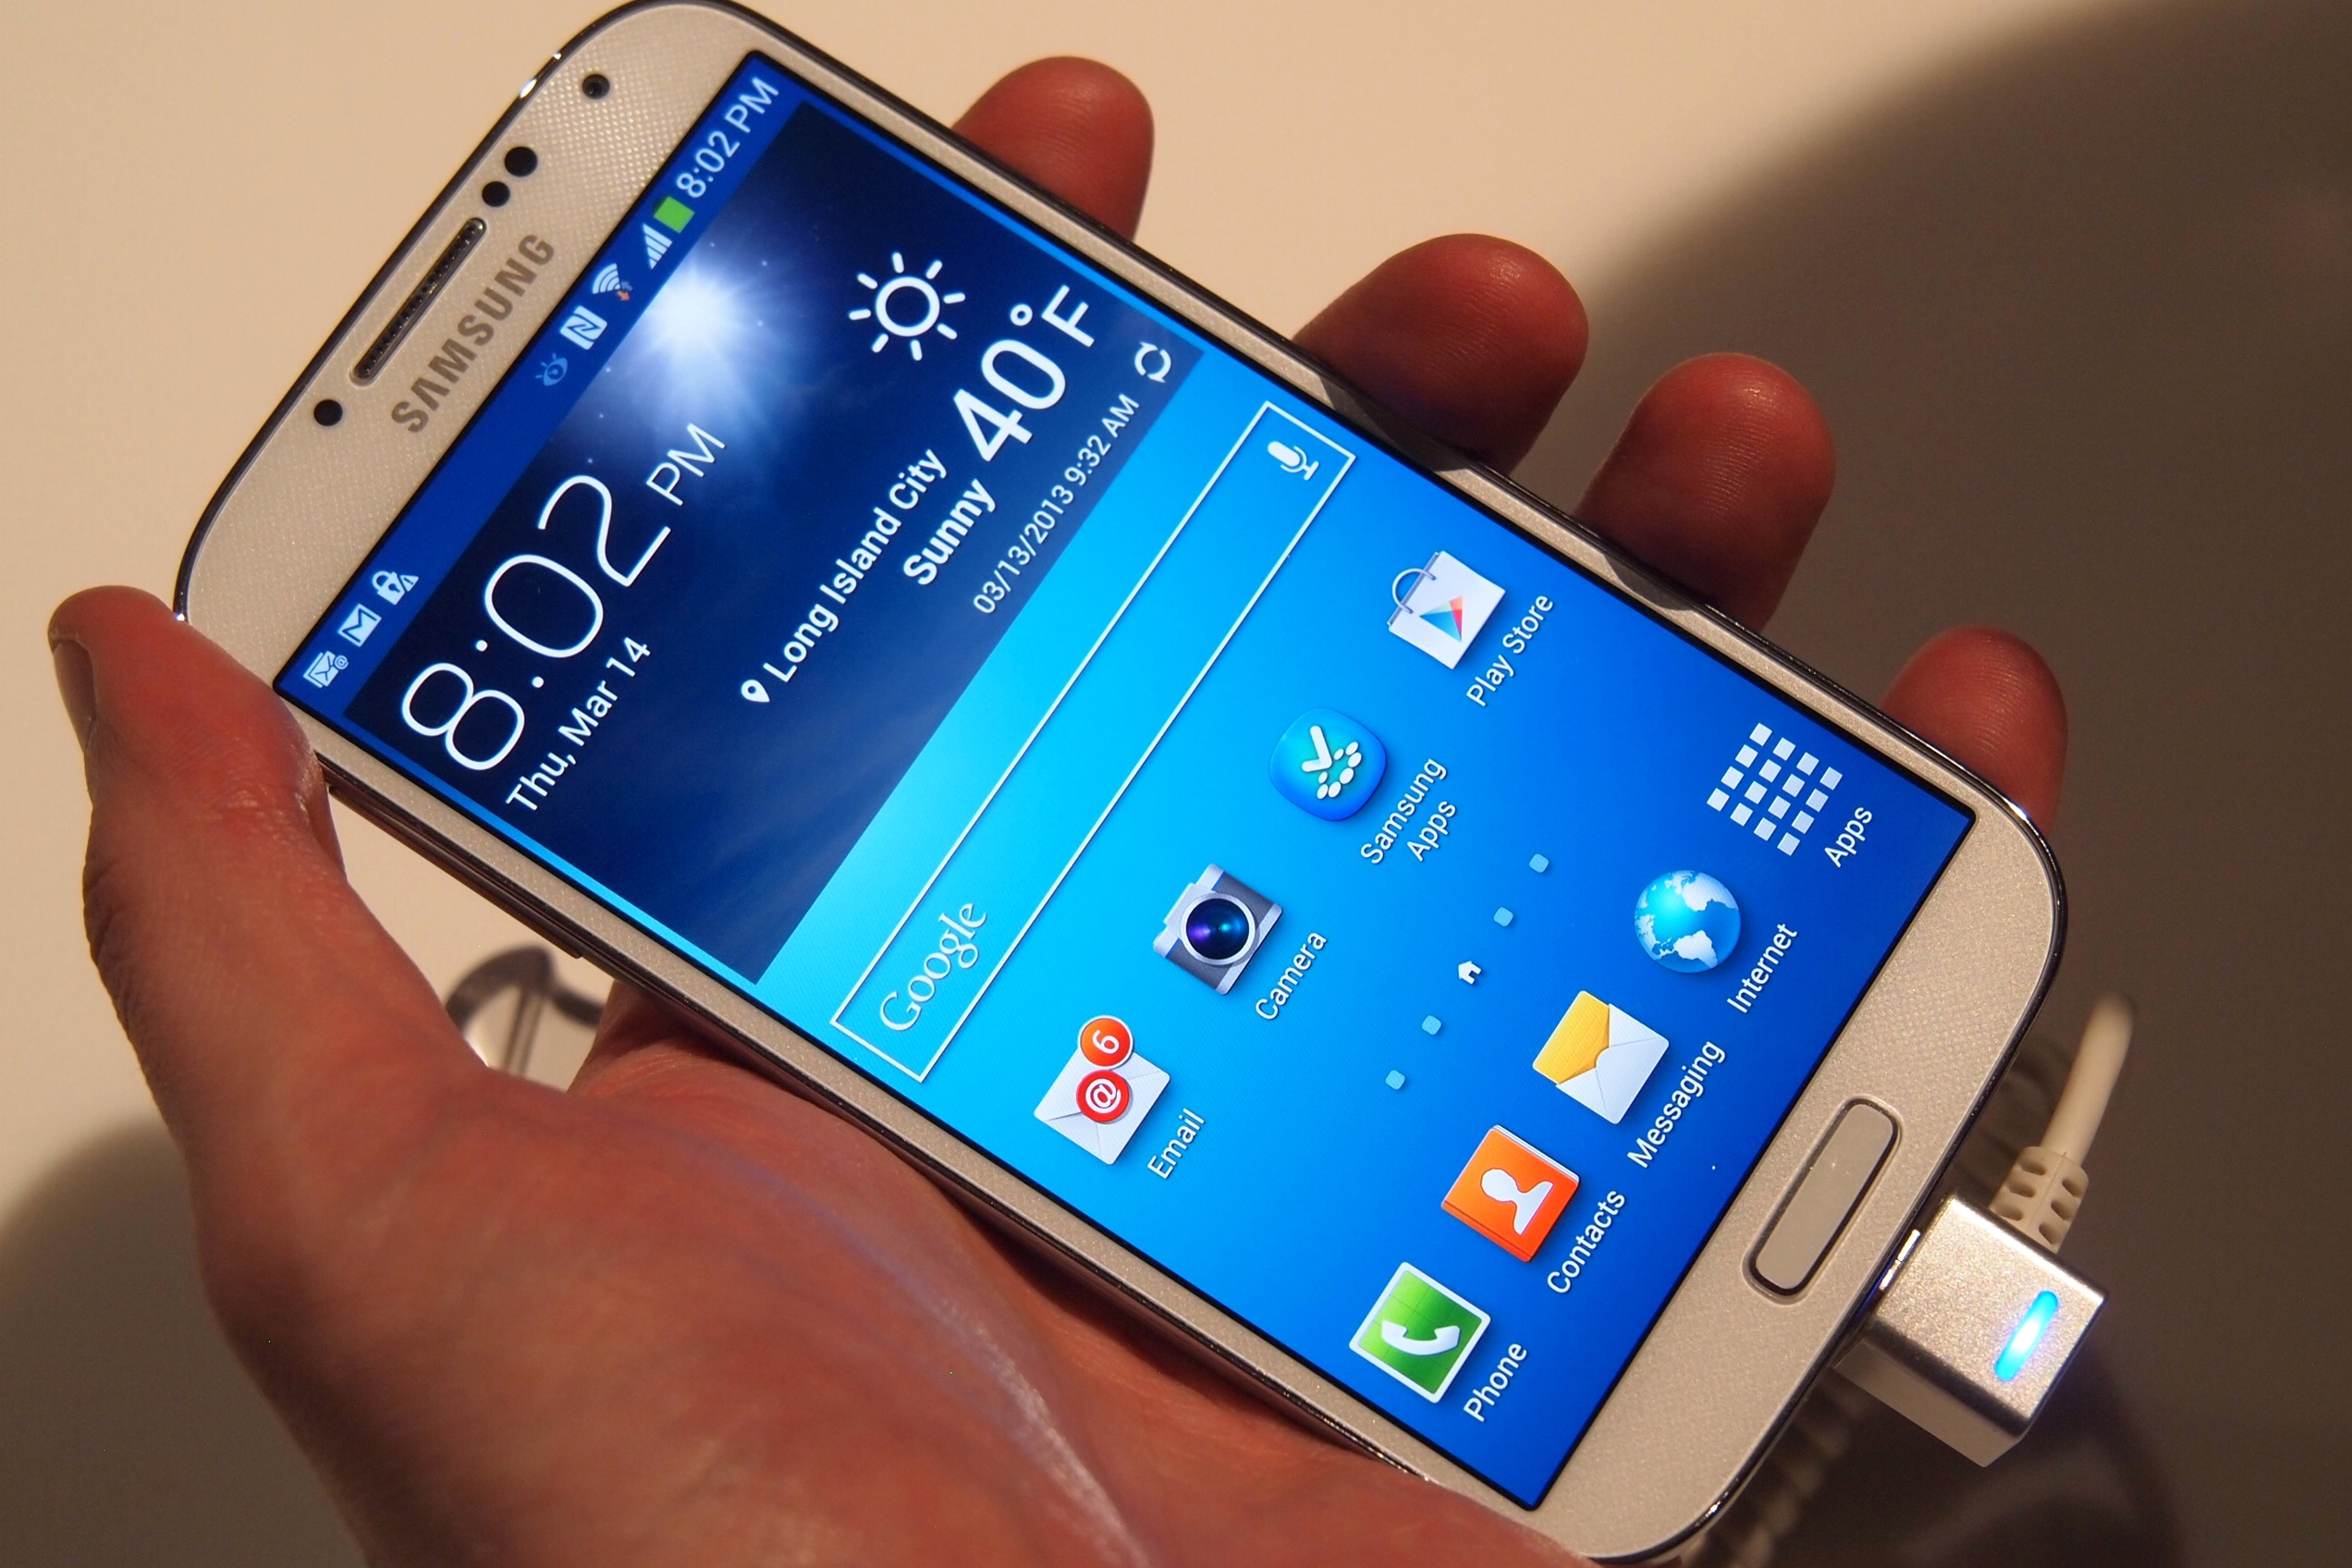 The Galaxy S5 is one of this year s most anticipated phones if not the most anticipated phone The Samsung Galaxy S line has long been viewed as the first